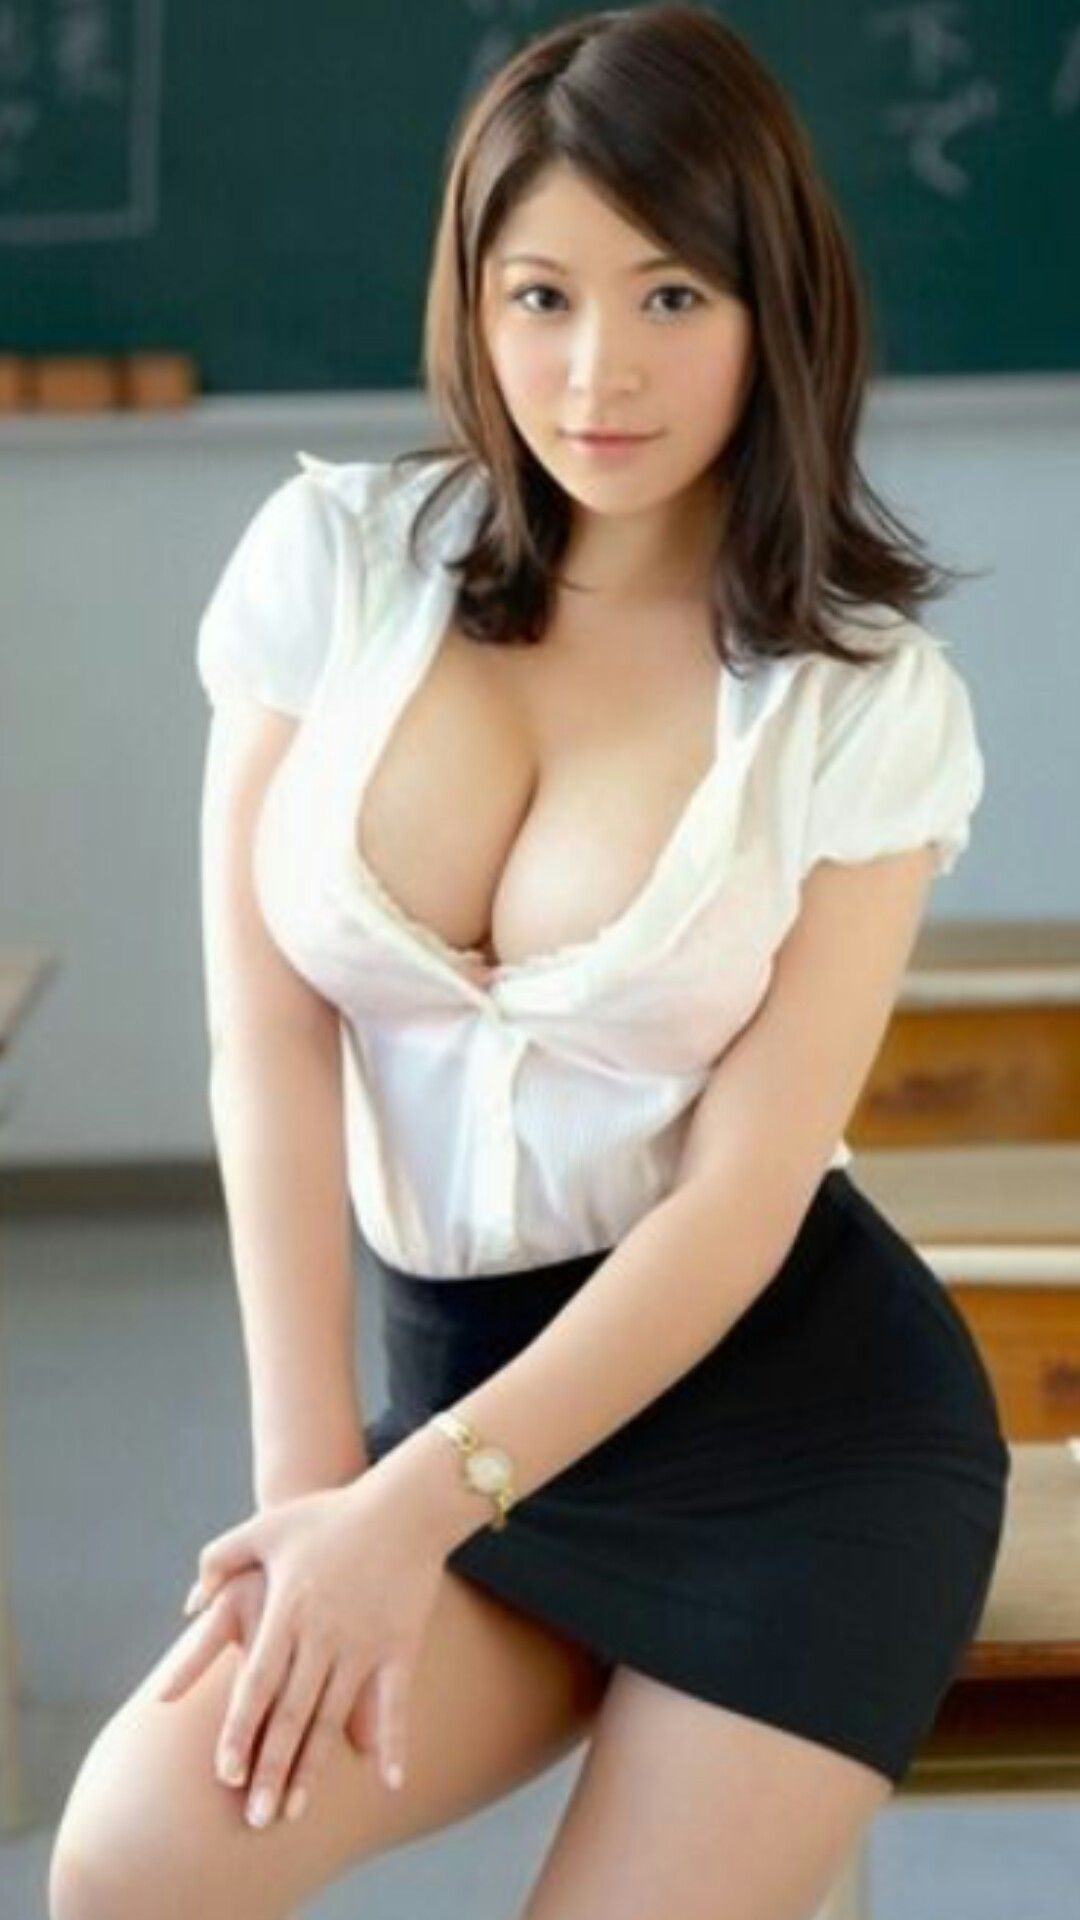 Hight school model pussy